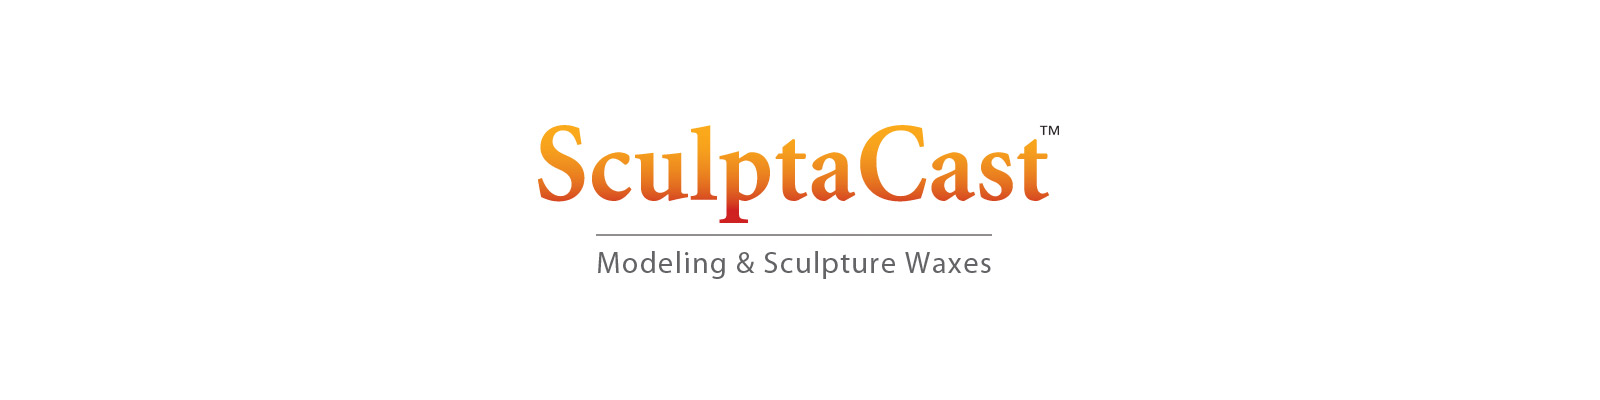 Precizioned - Precizioned Integrated Casting Solutions - Sculpture Casting Wax